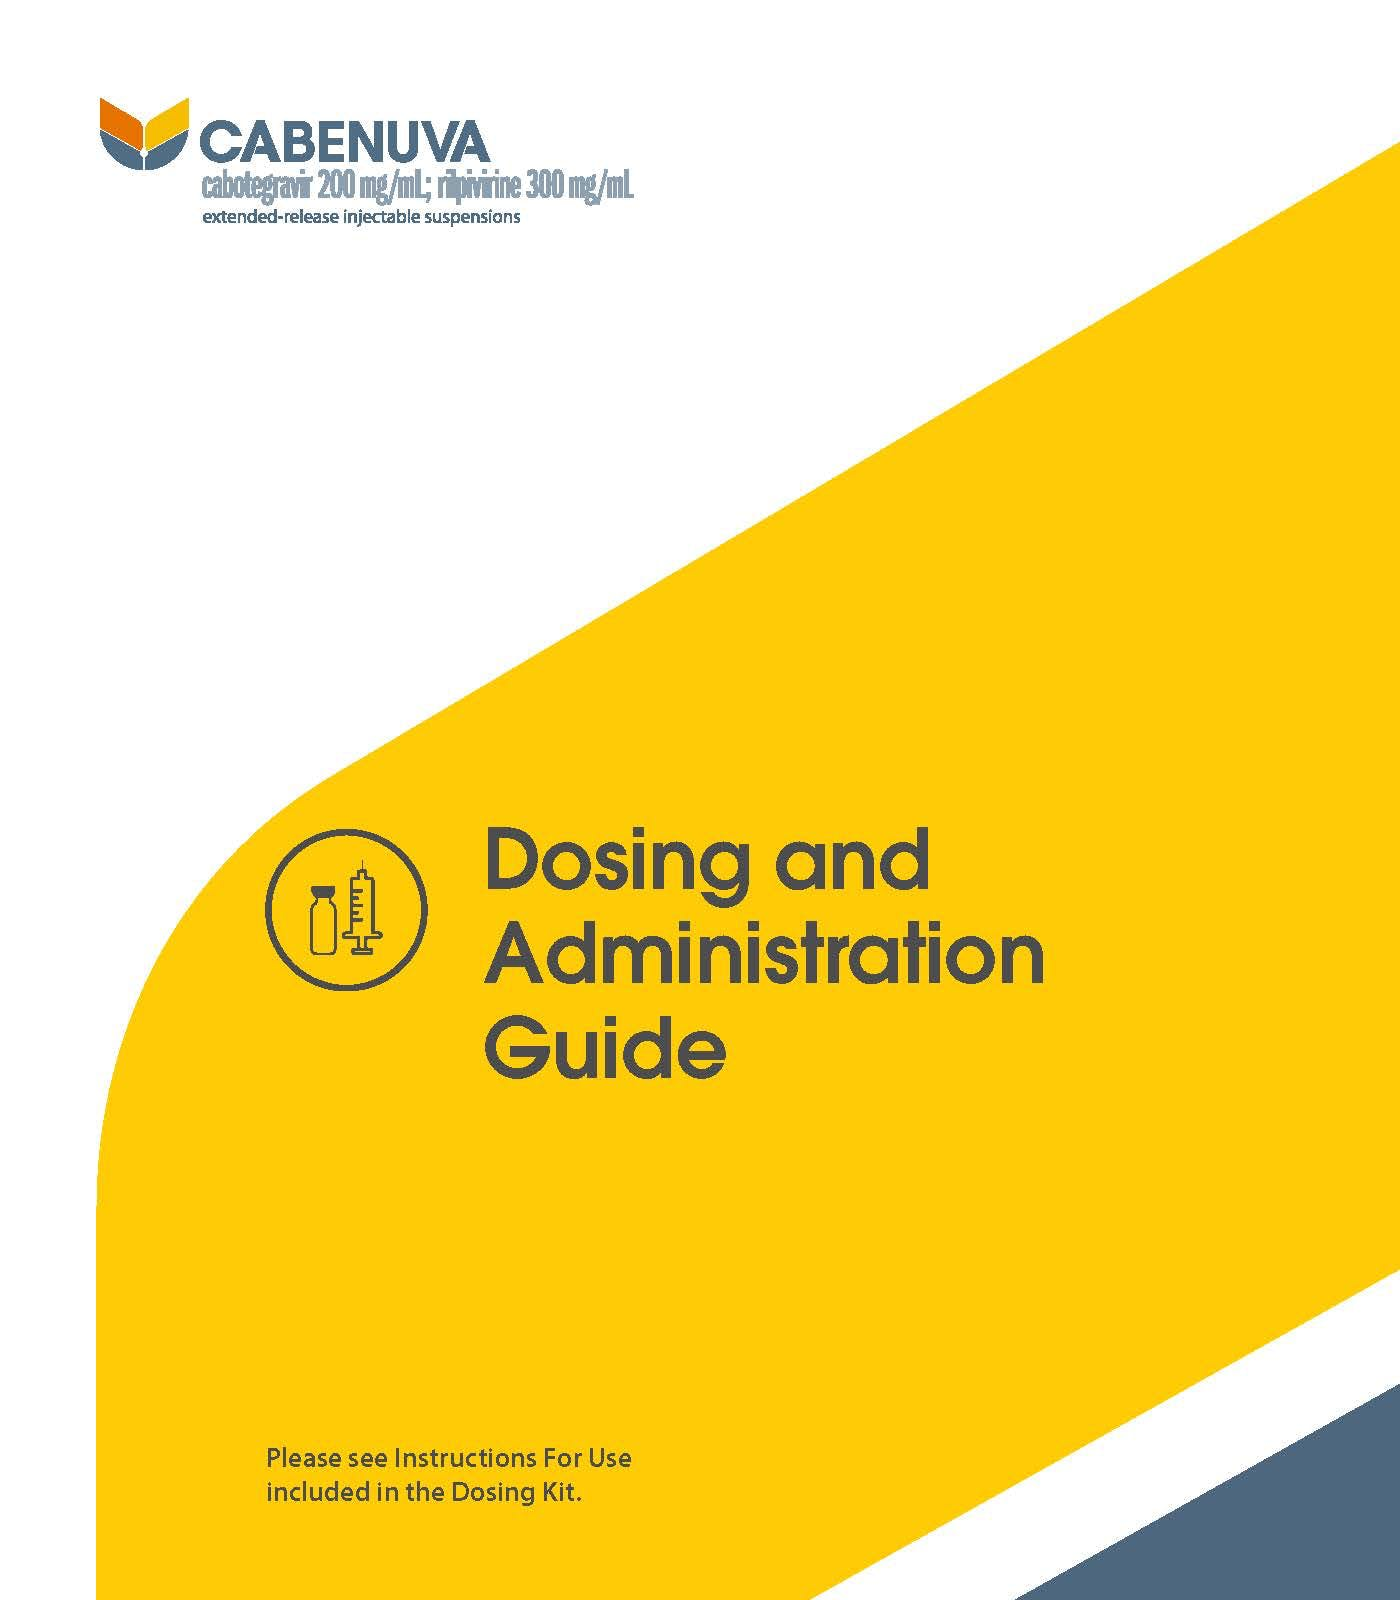 Dosing and Administration Guide